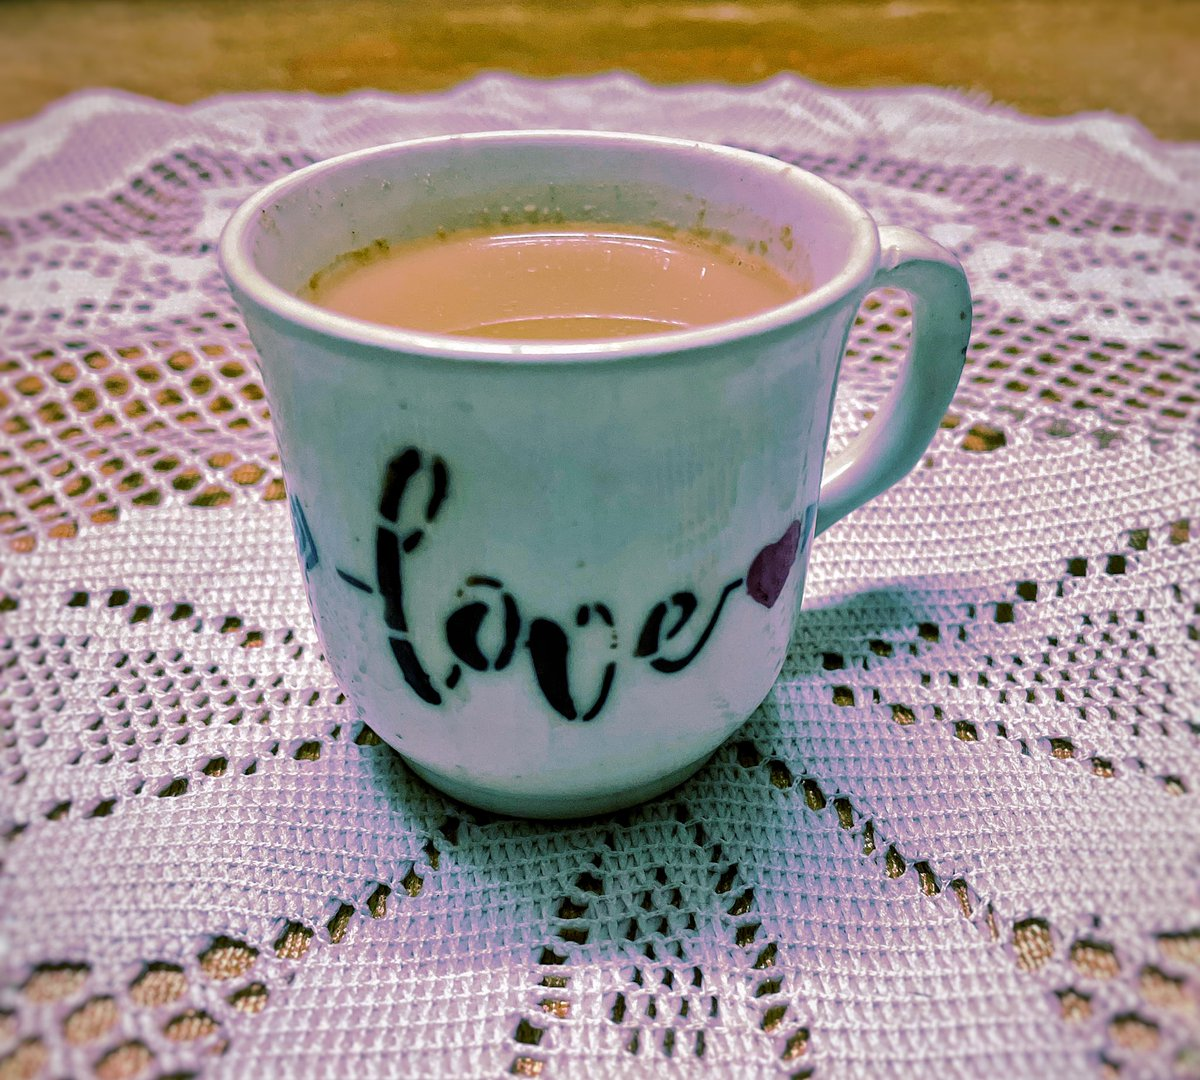 Being served #chai in a cup full of #love ♥️   #tuesdayvibe #tea